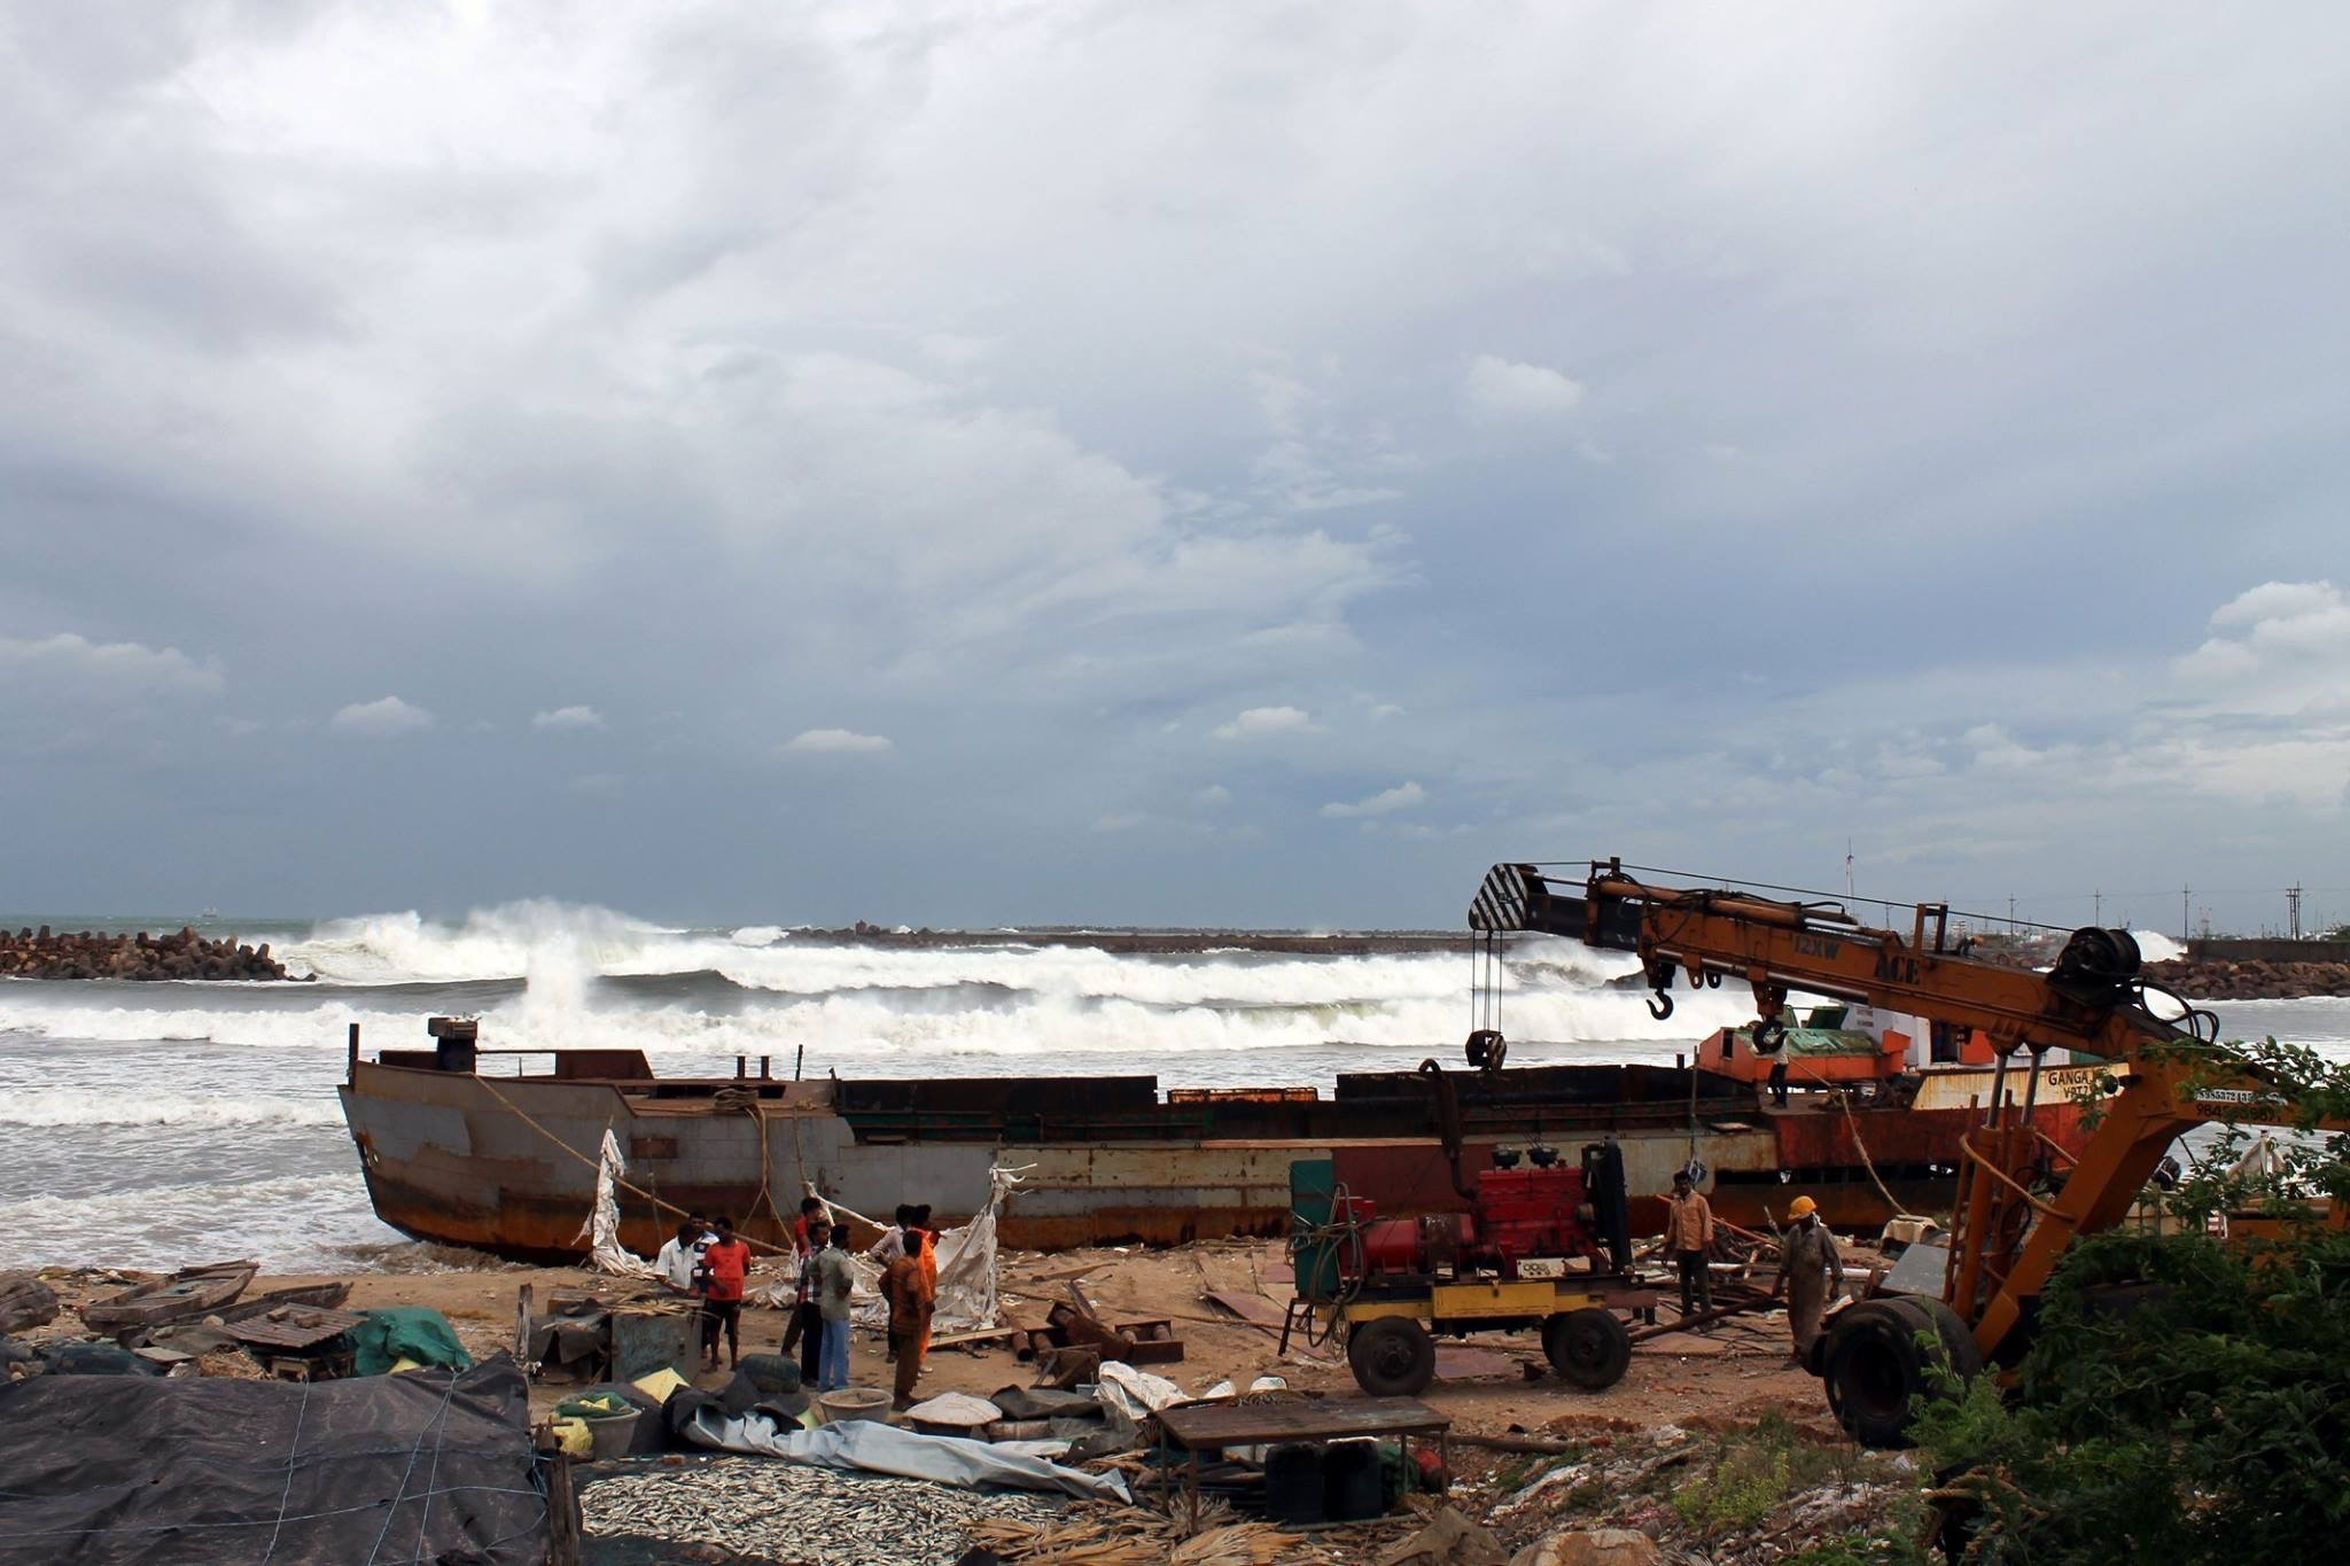 Giant wanted hitting the coast . Cyclone effect . People trying to move their equipment to safer places